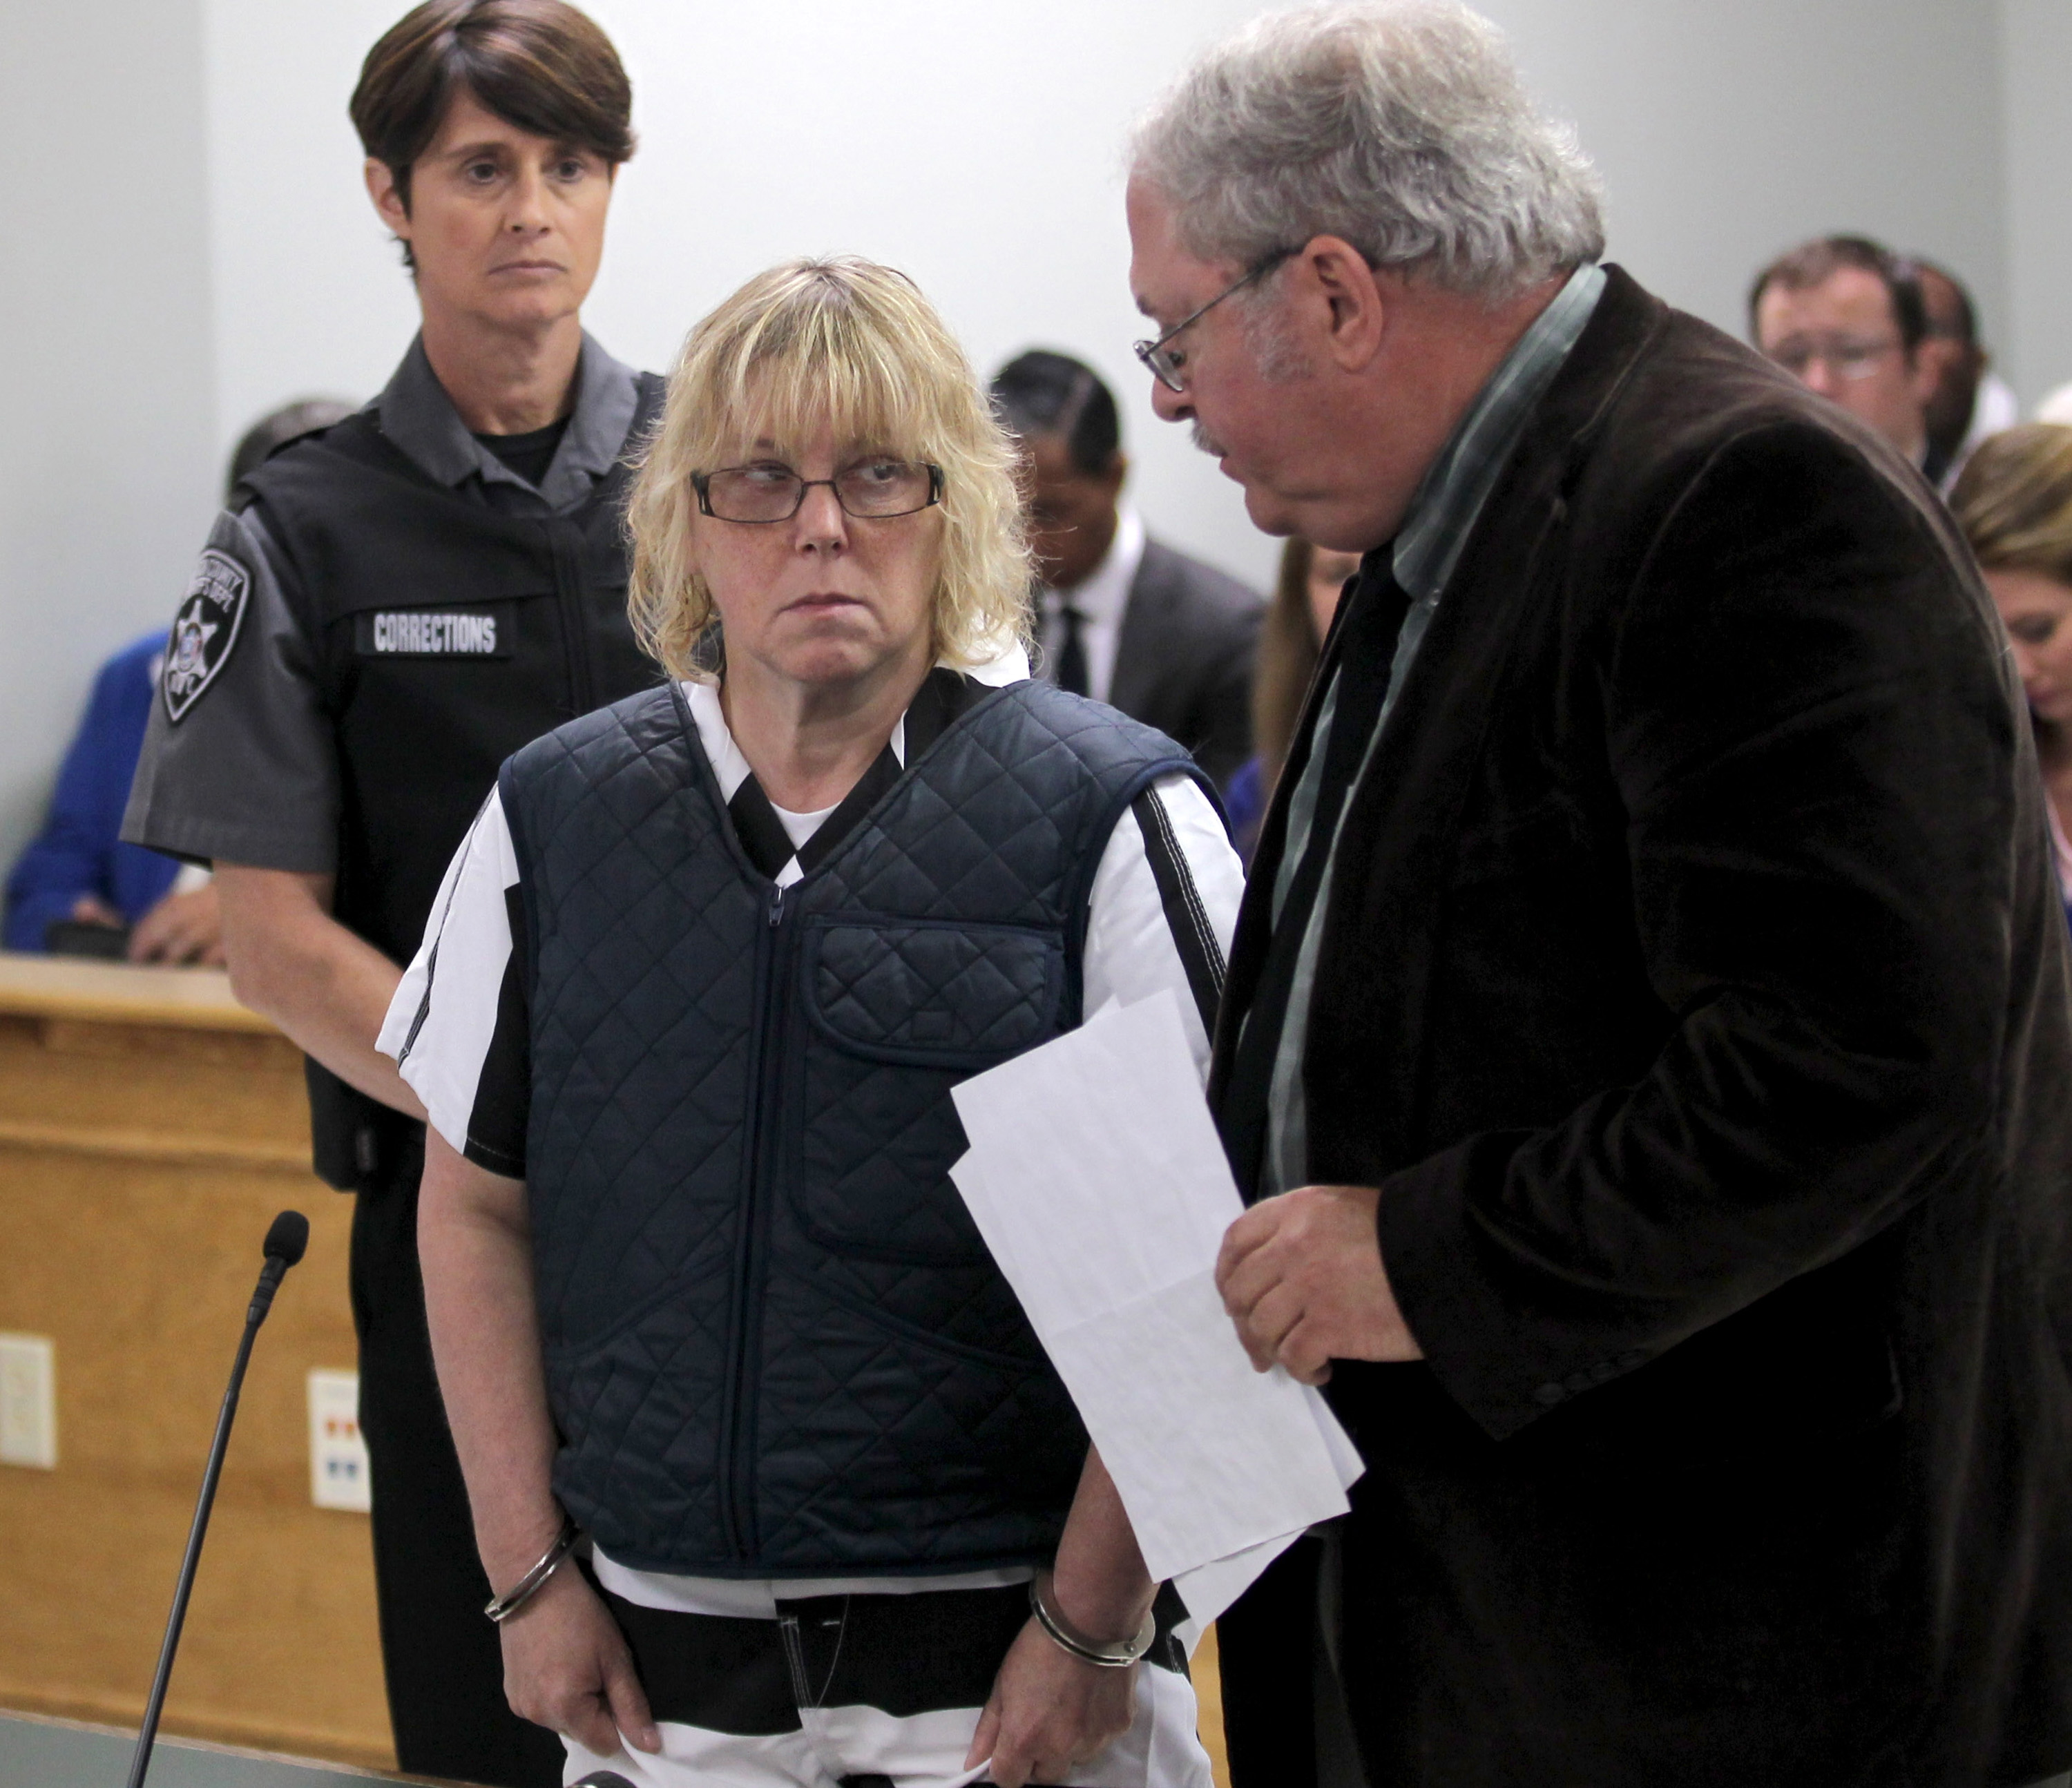 Joyce Mitchell, left appears with her lawyer Stephen Johnston before Judge Buck Rogers in Plattsburgh City Court on June 15, 2015 in Plattsburgh, New York.